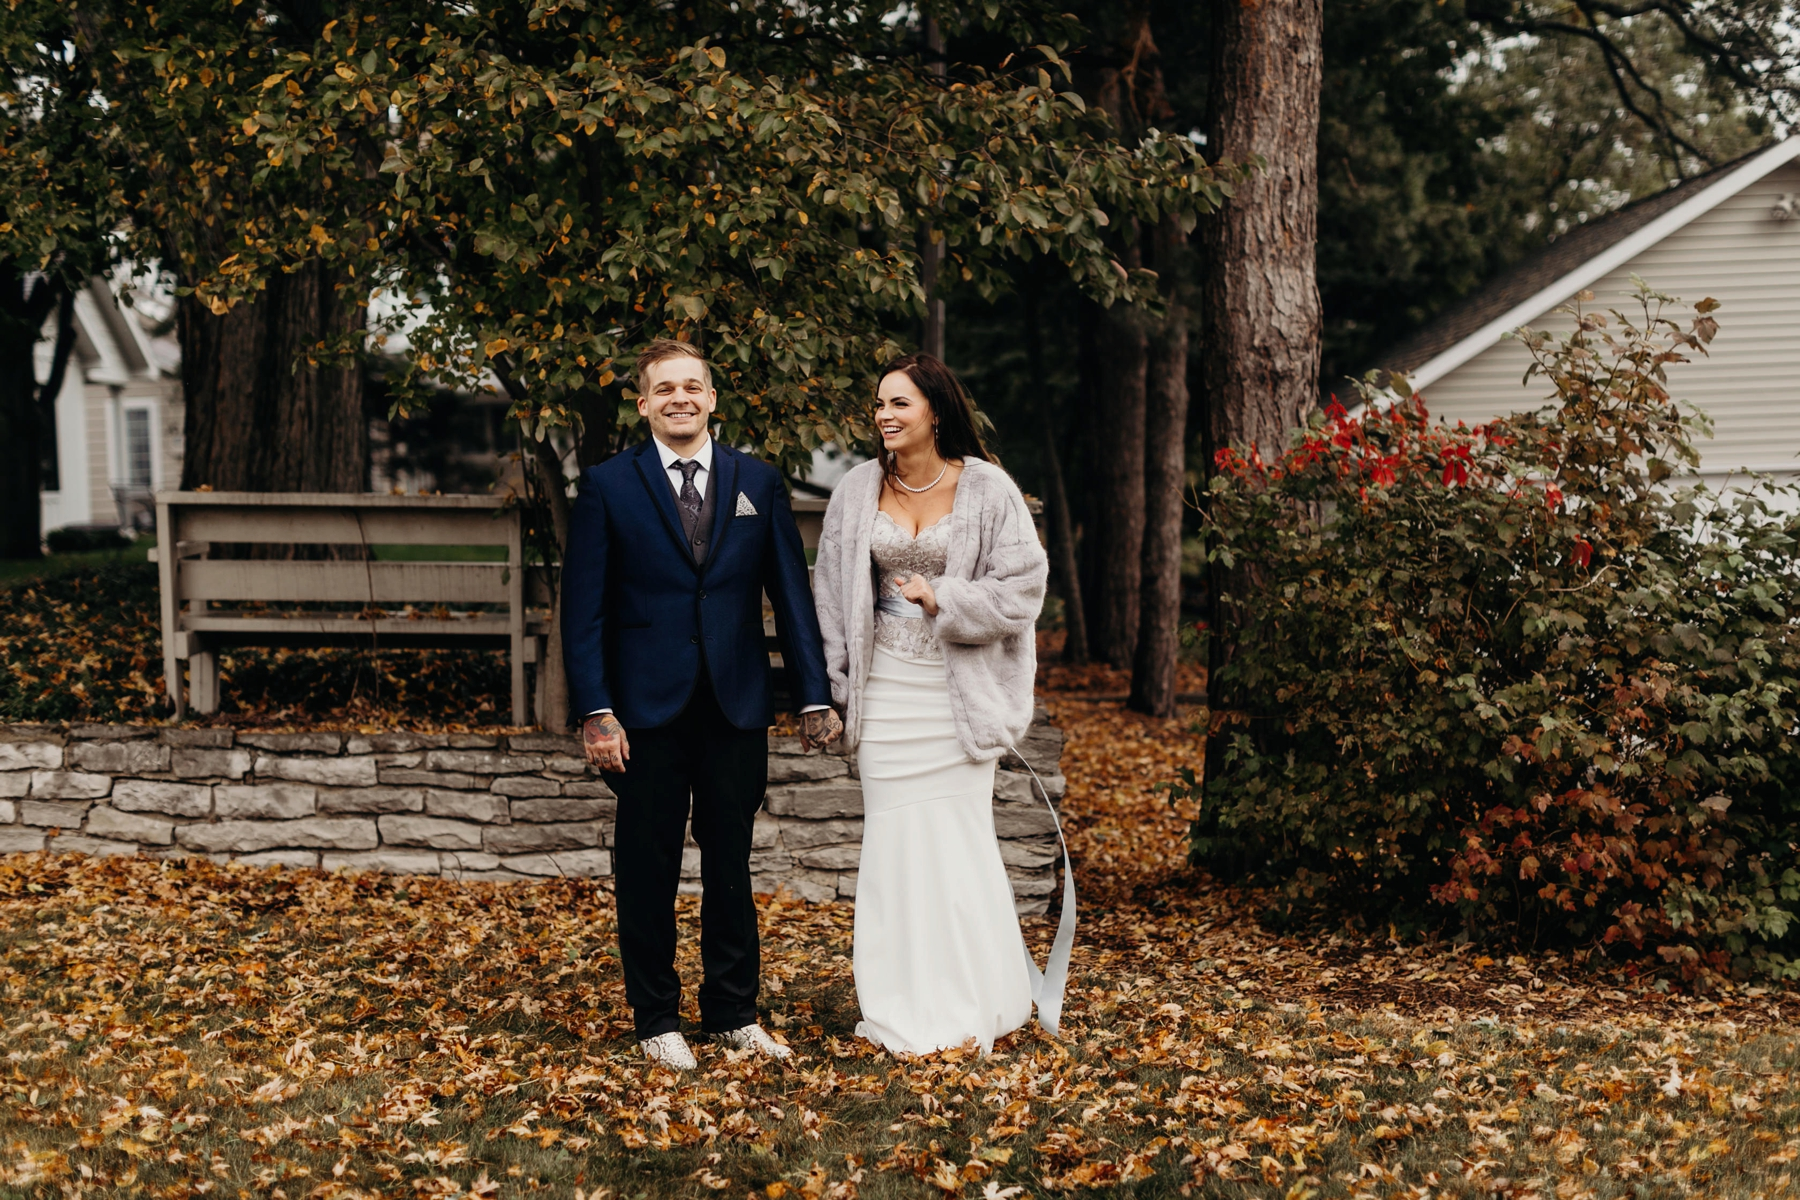 elopement-photographer-ryan-jimmy31.JPG